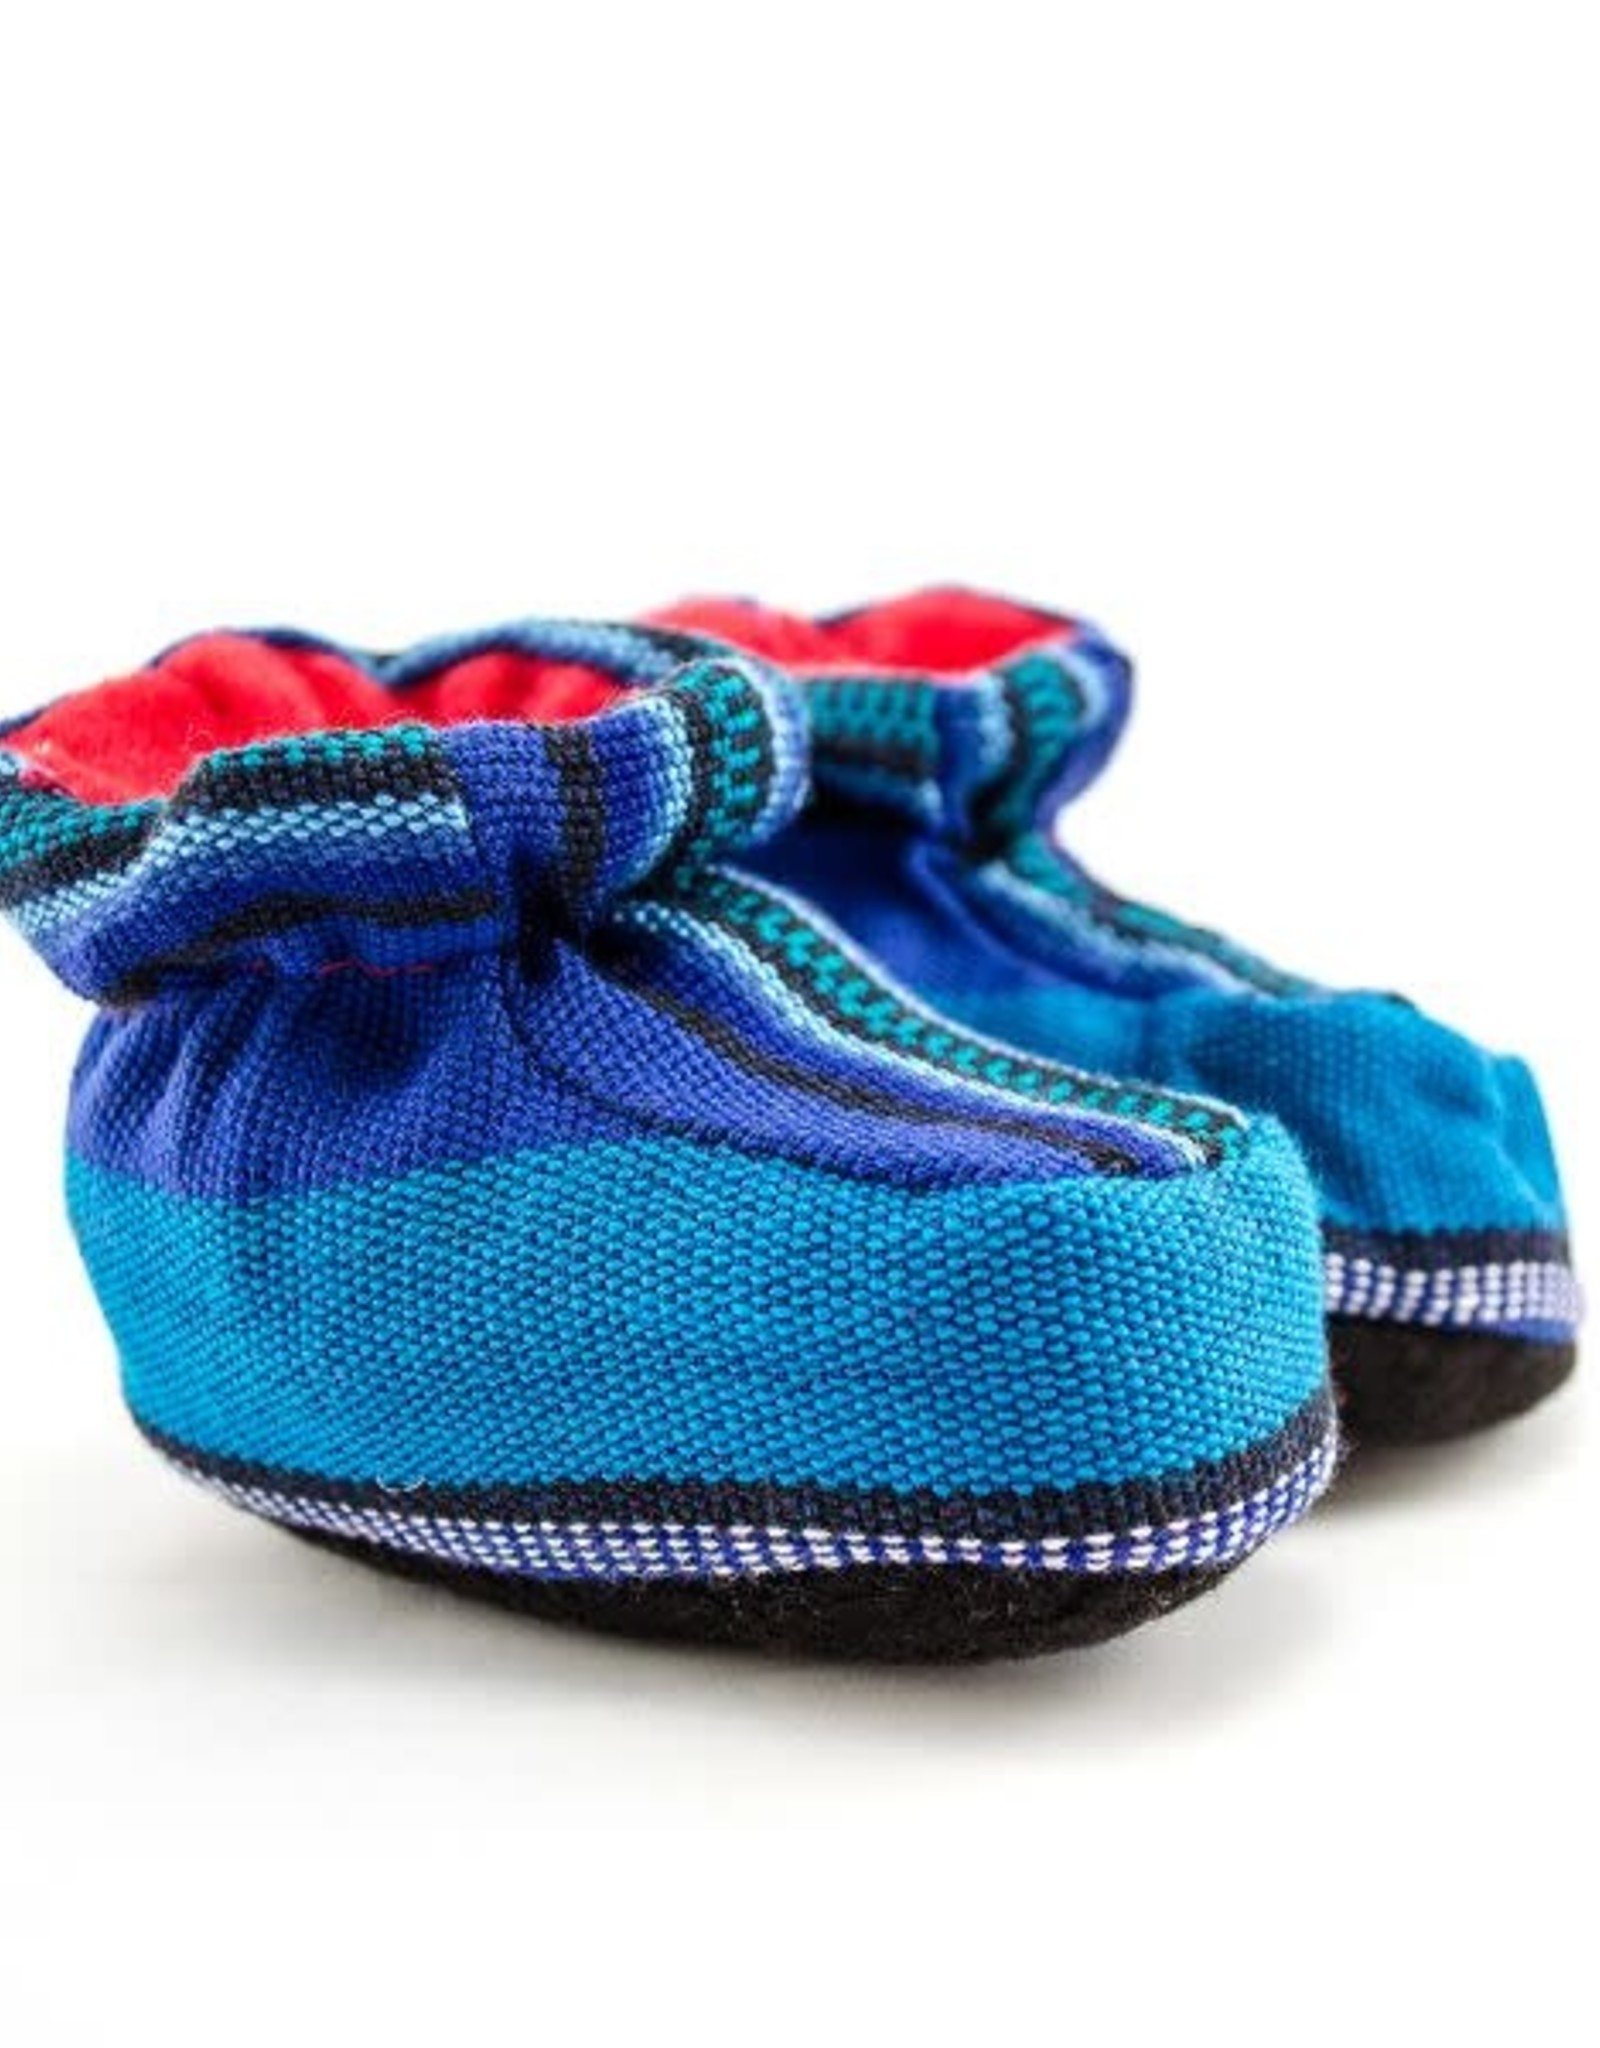 Lucia's Imports Children's Booties